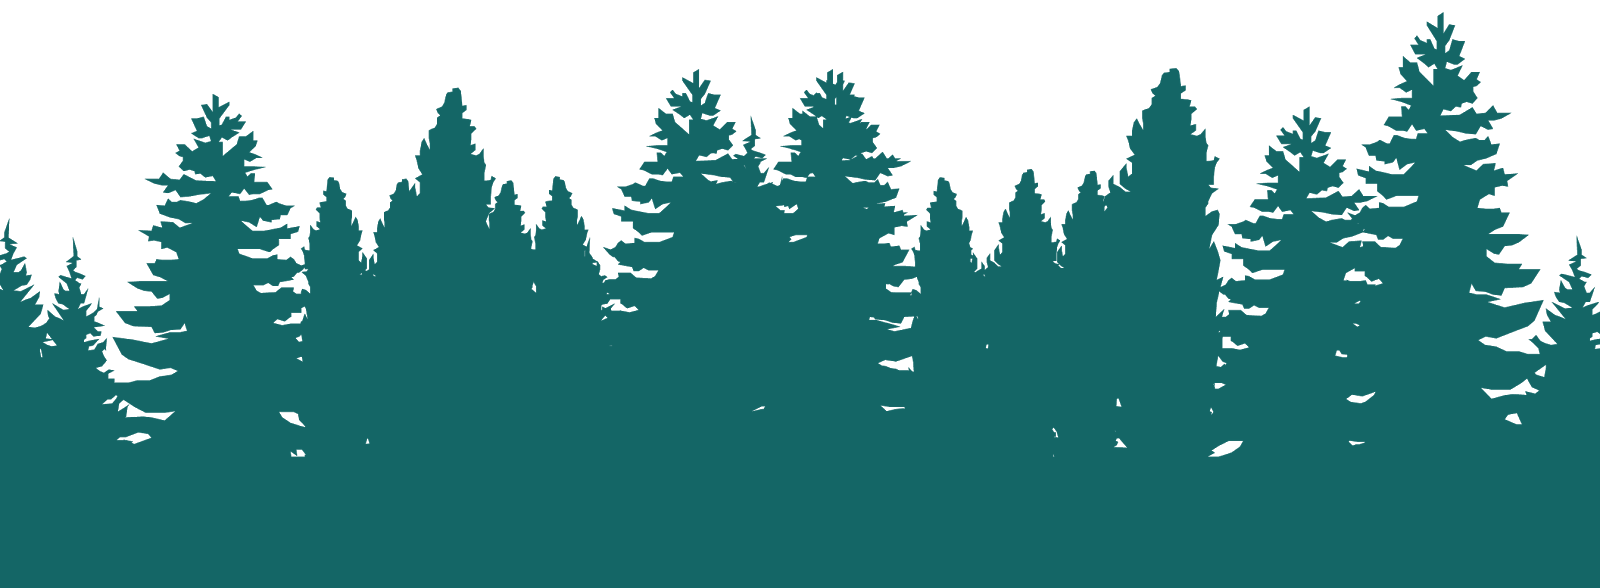 Forest Silhouette Tree Clip art.